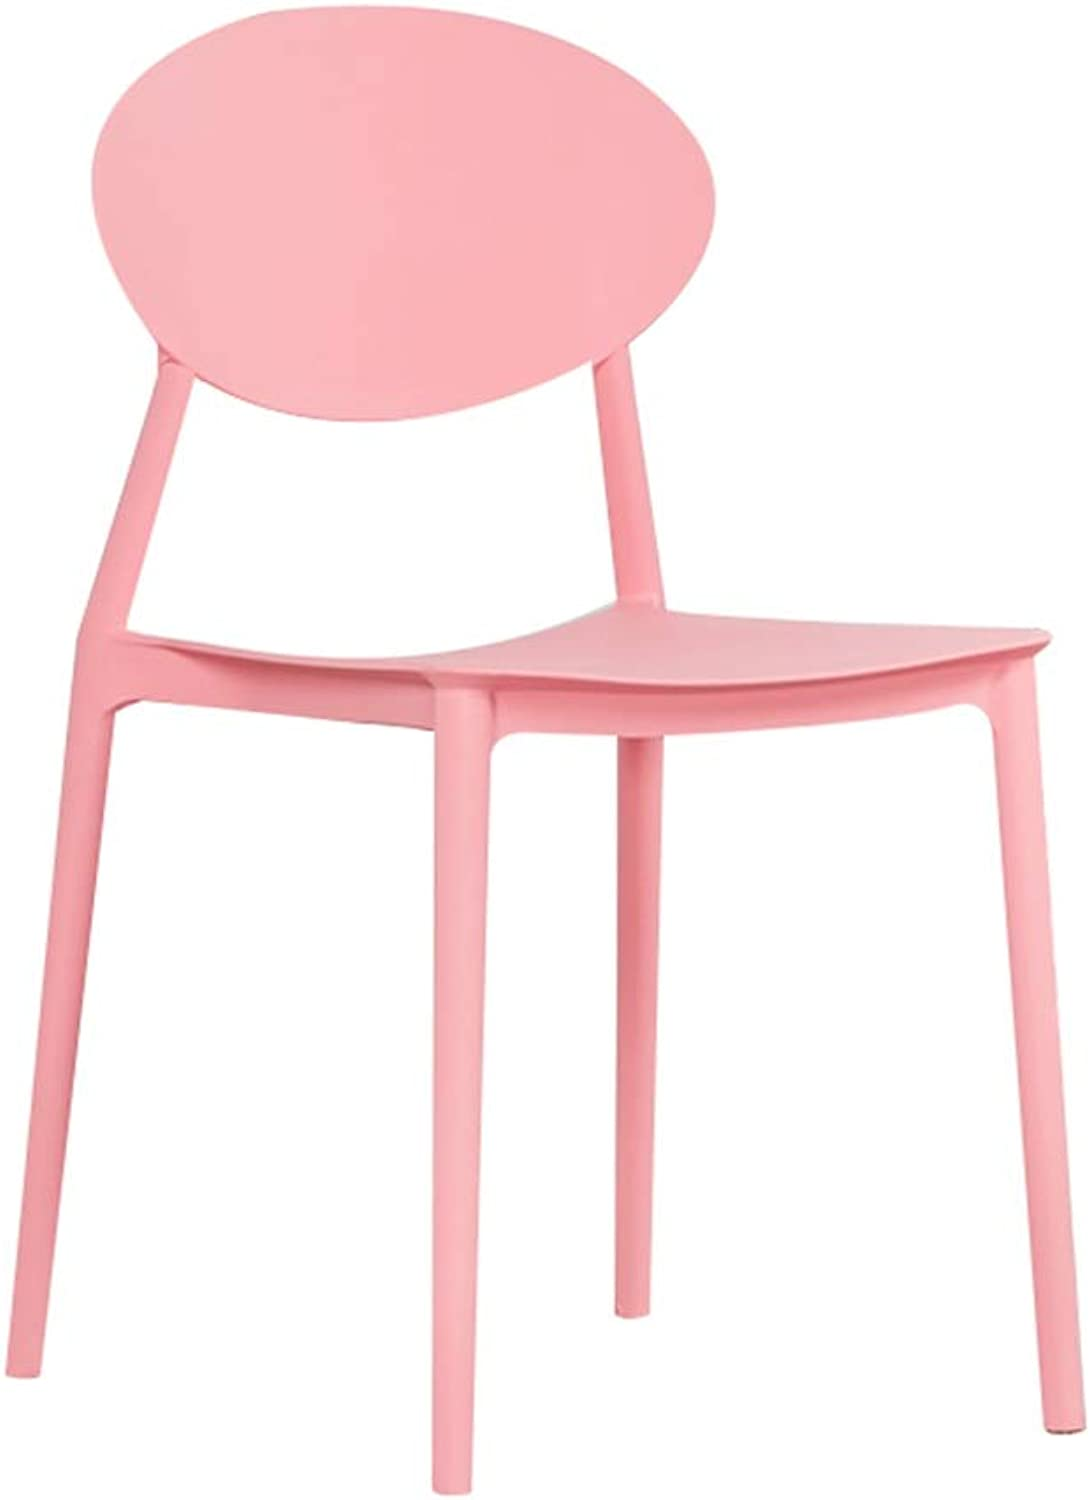 AGL-Bathroom Stools Chair Multipurpose Plastic Backrest Non-Slip Modern Creative Leisure Restaurant Lazy Chair,Multiple Colour (color   Pink, Size   44X47X82CM)